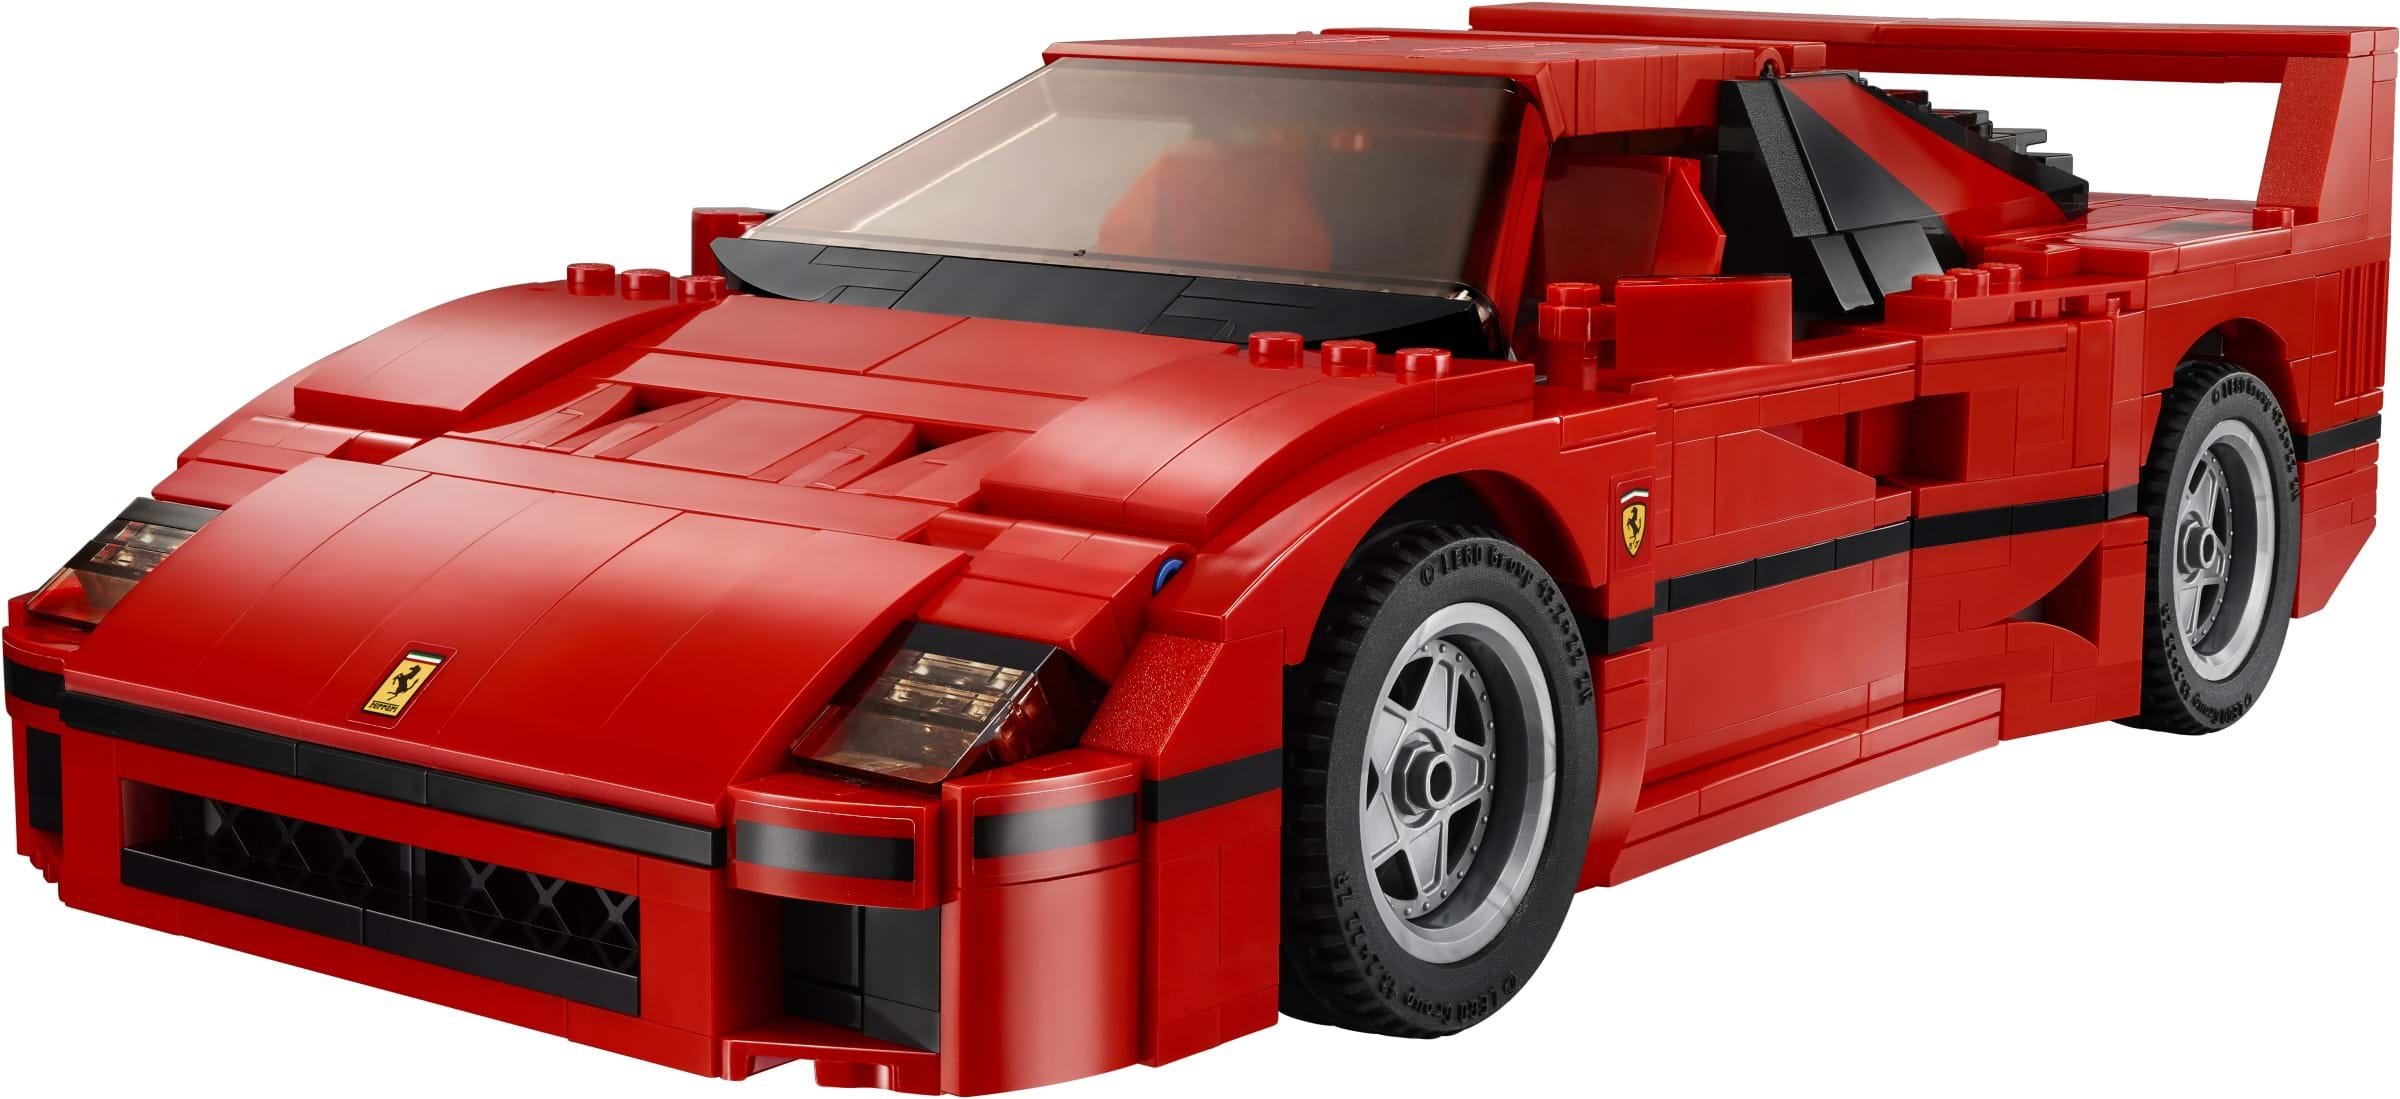 lego creator ferrari f40 10248 creator ferrari f40 billig. Black Bedroom Furniture Sets. Home Design Ideas